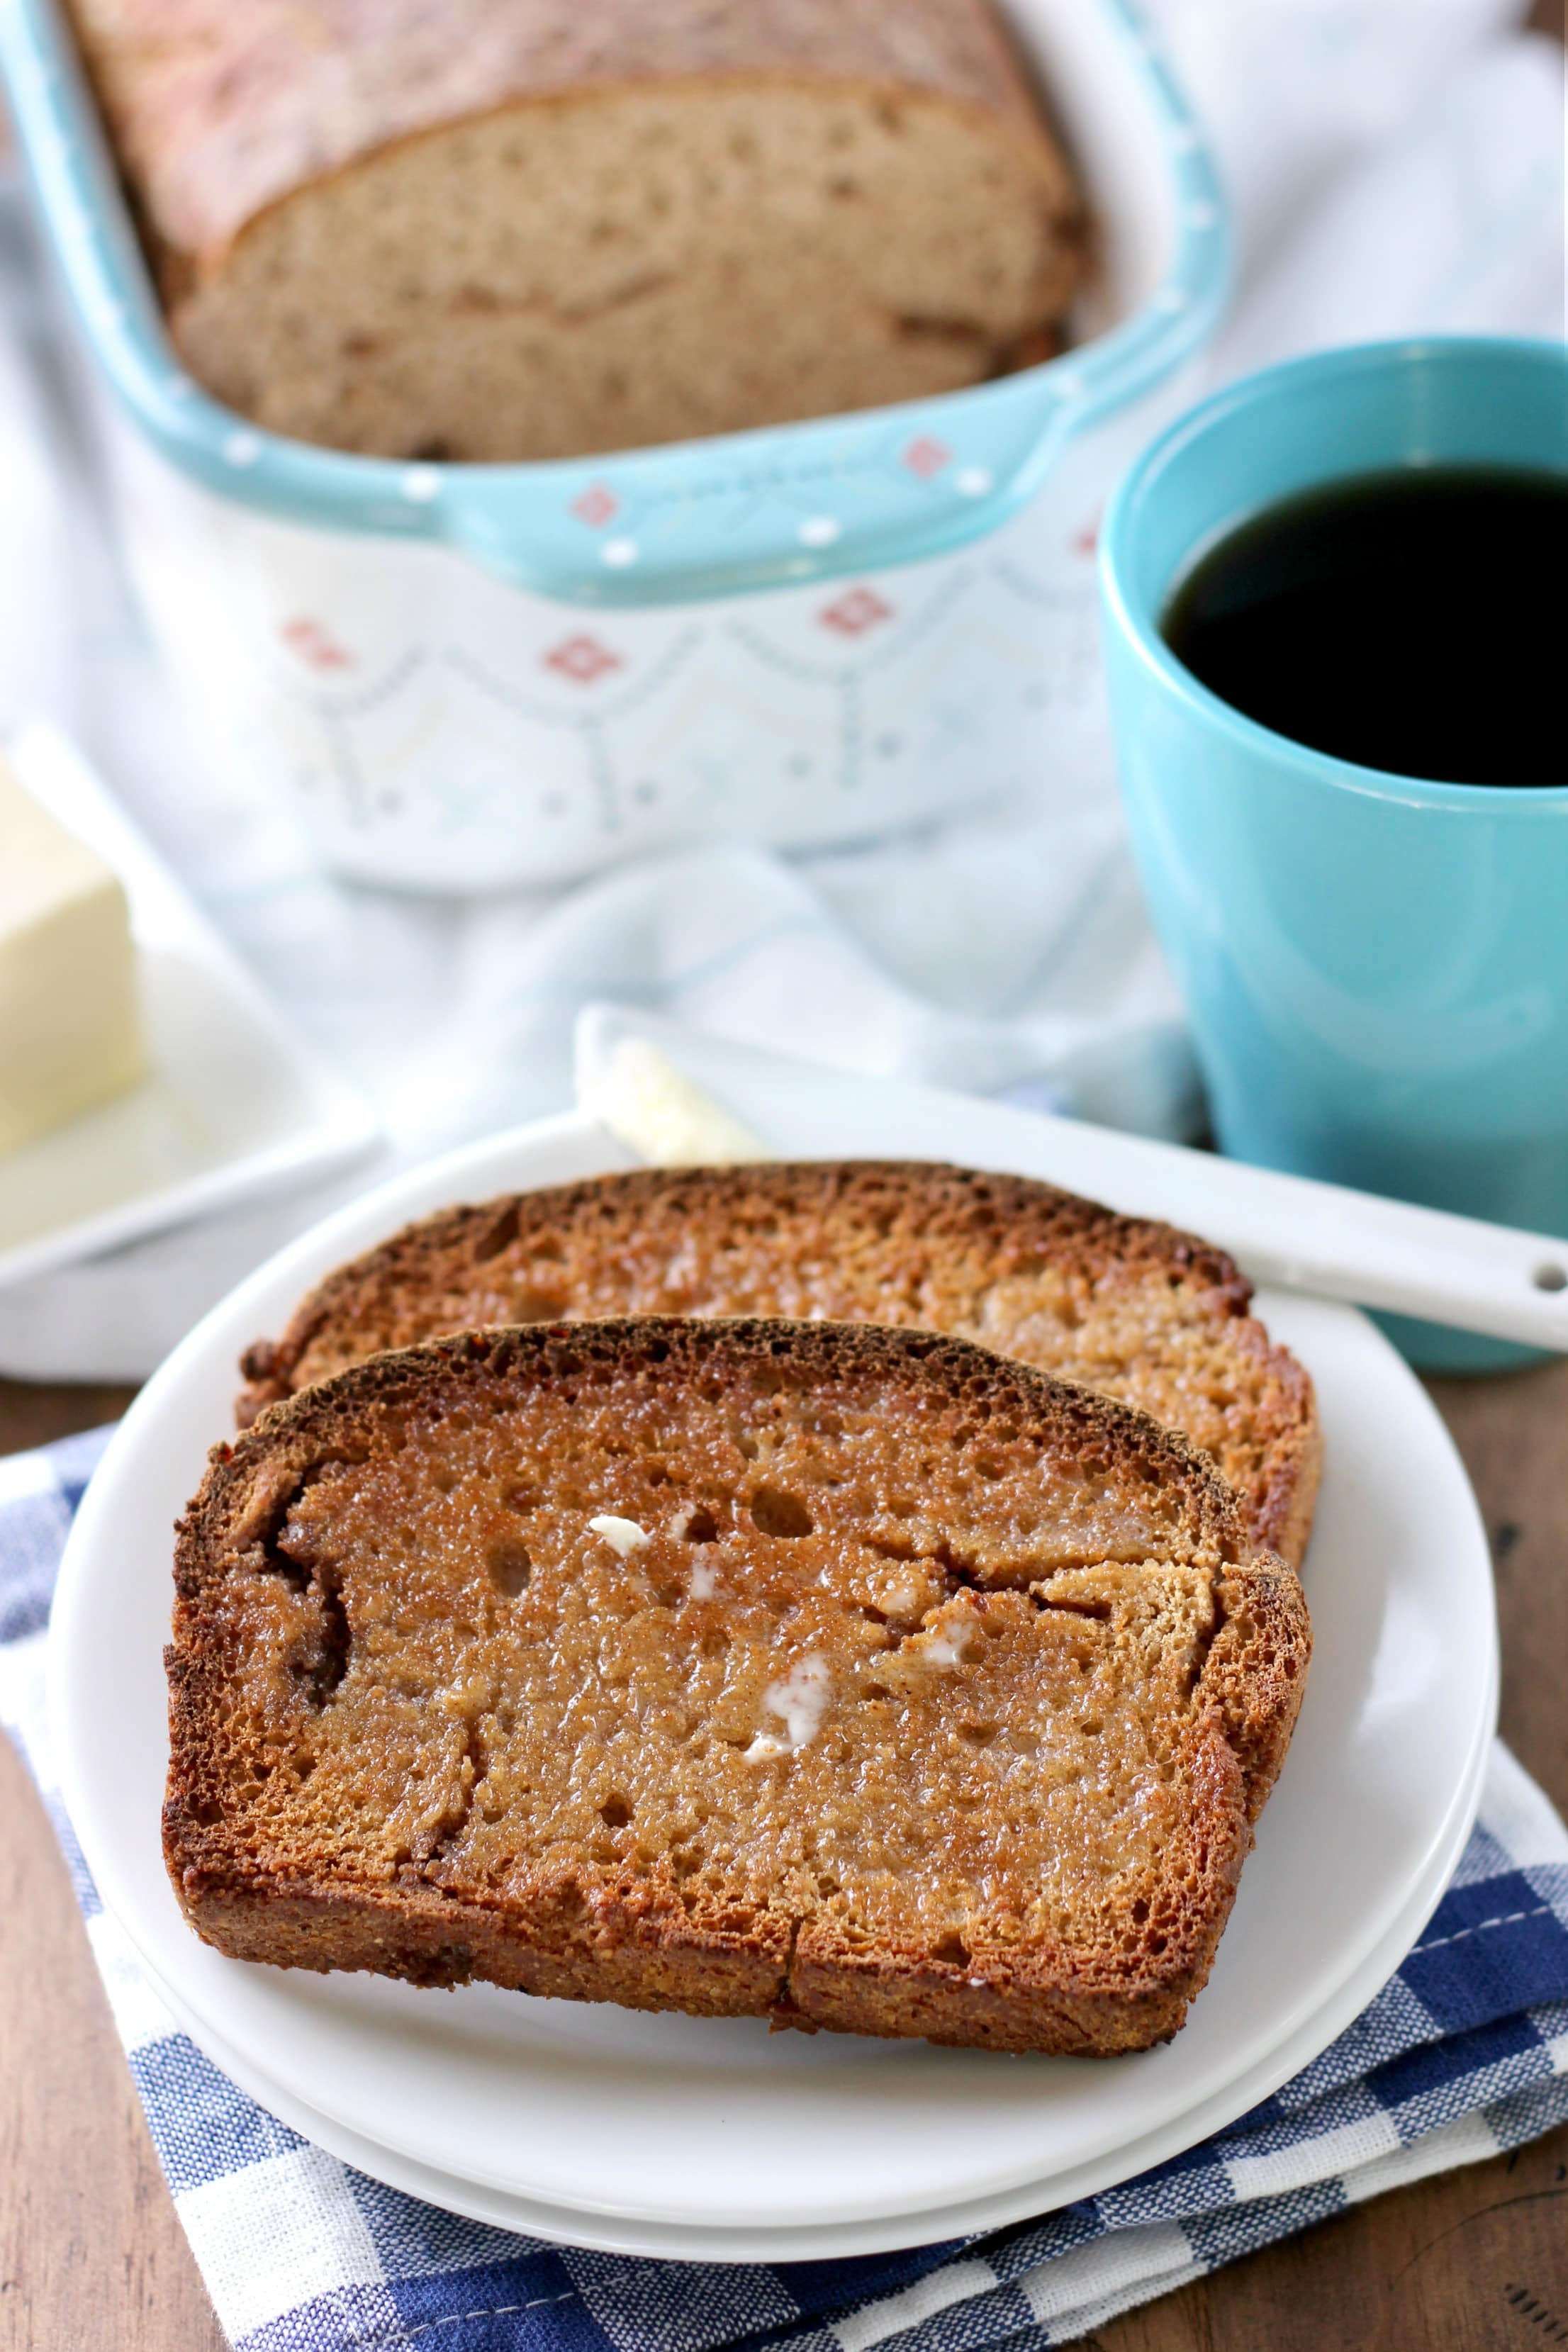 Cool French Toast English Muffin Bread Recipe From A Kitchen Addiction French Toast English Muffin Bread A Kitchen Addiction Banana Bread French Toast Vegan Banana Bread French Toast Toronto nice food Banana Bread French Toast